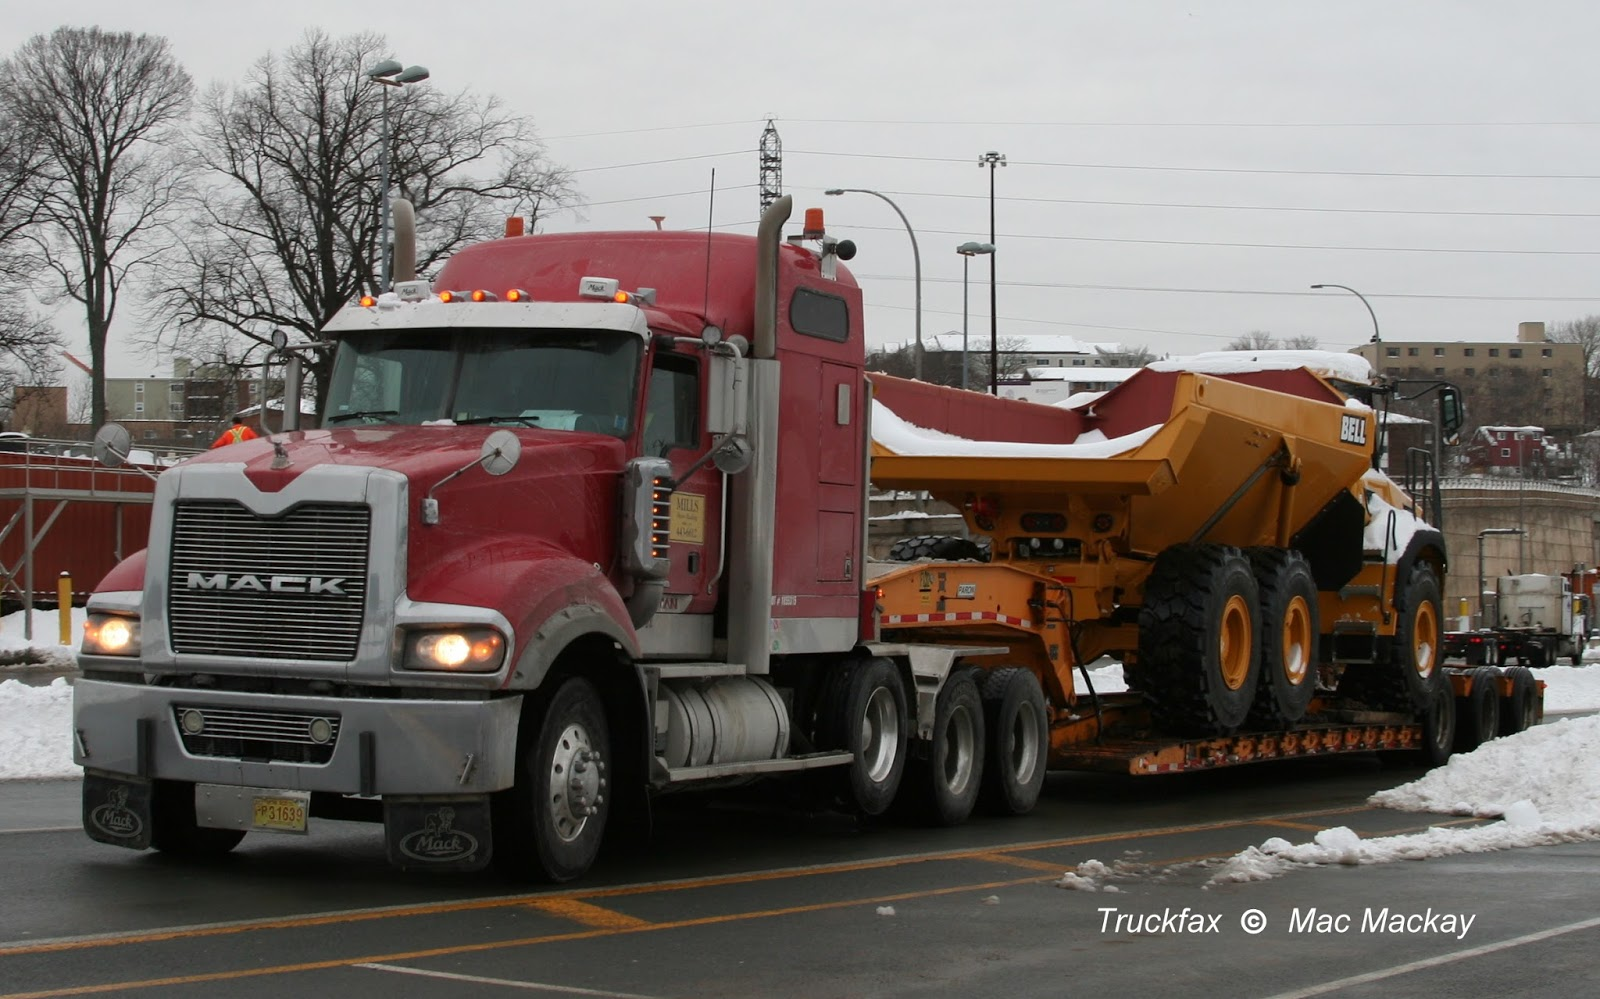 mills big mack titan and paron trailer was on the road today hauling one of the imported bell articulated off road dump trucks this one a b30e which  [ 1600 x 999 Pixel ]